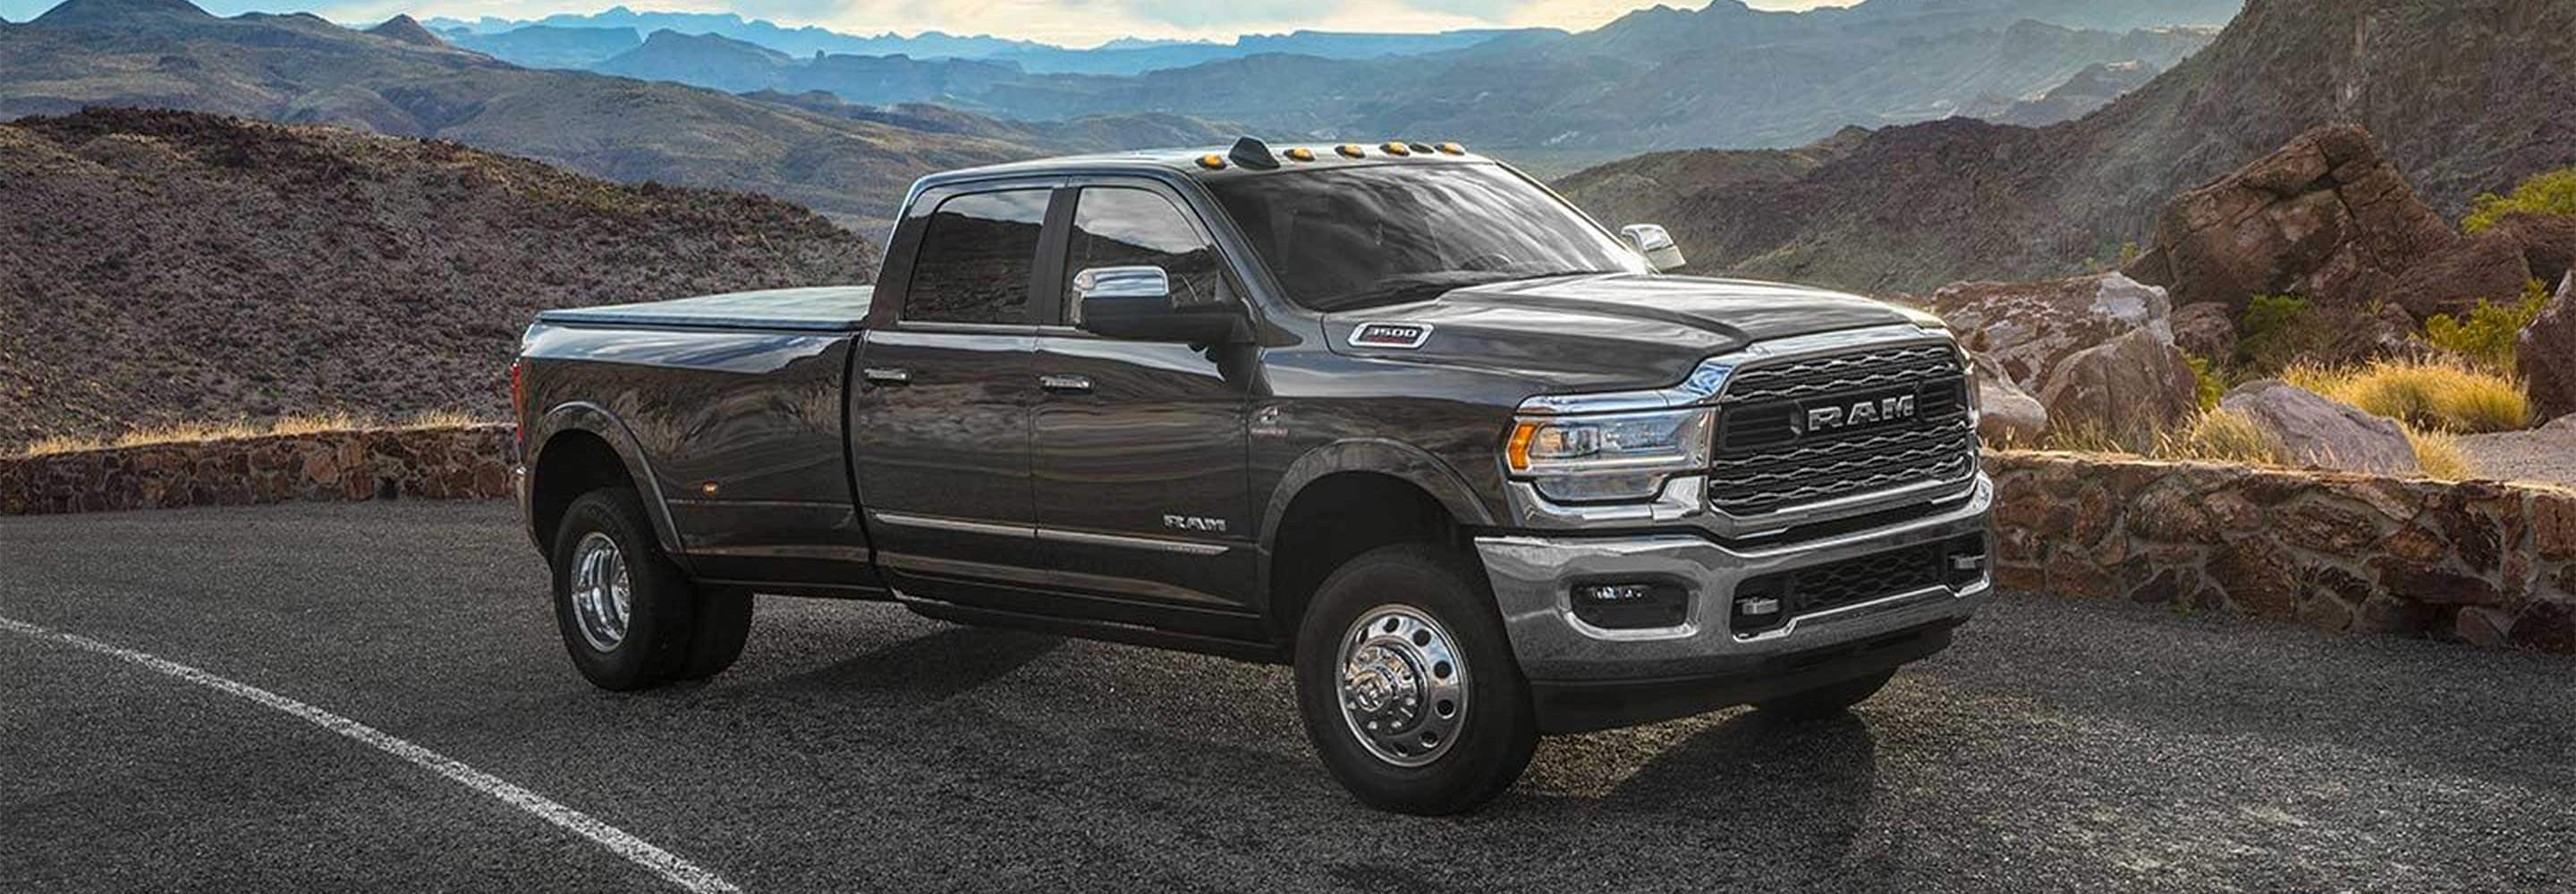 New Features in the 2020 Ram 2500 & 3500 HD